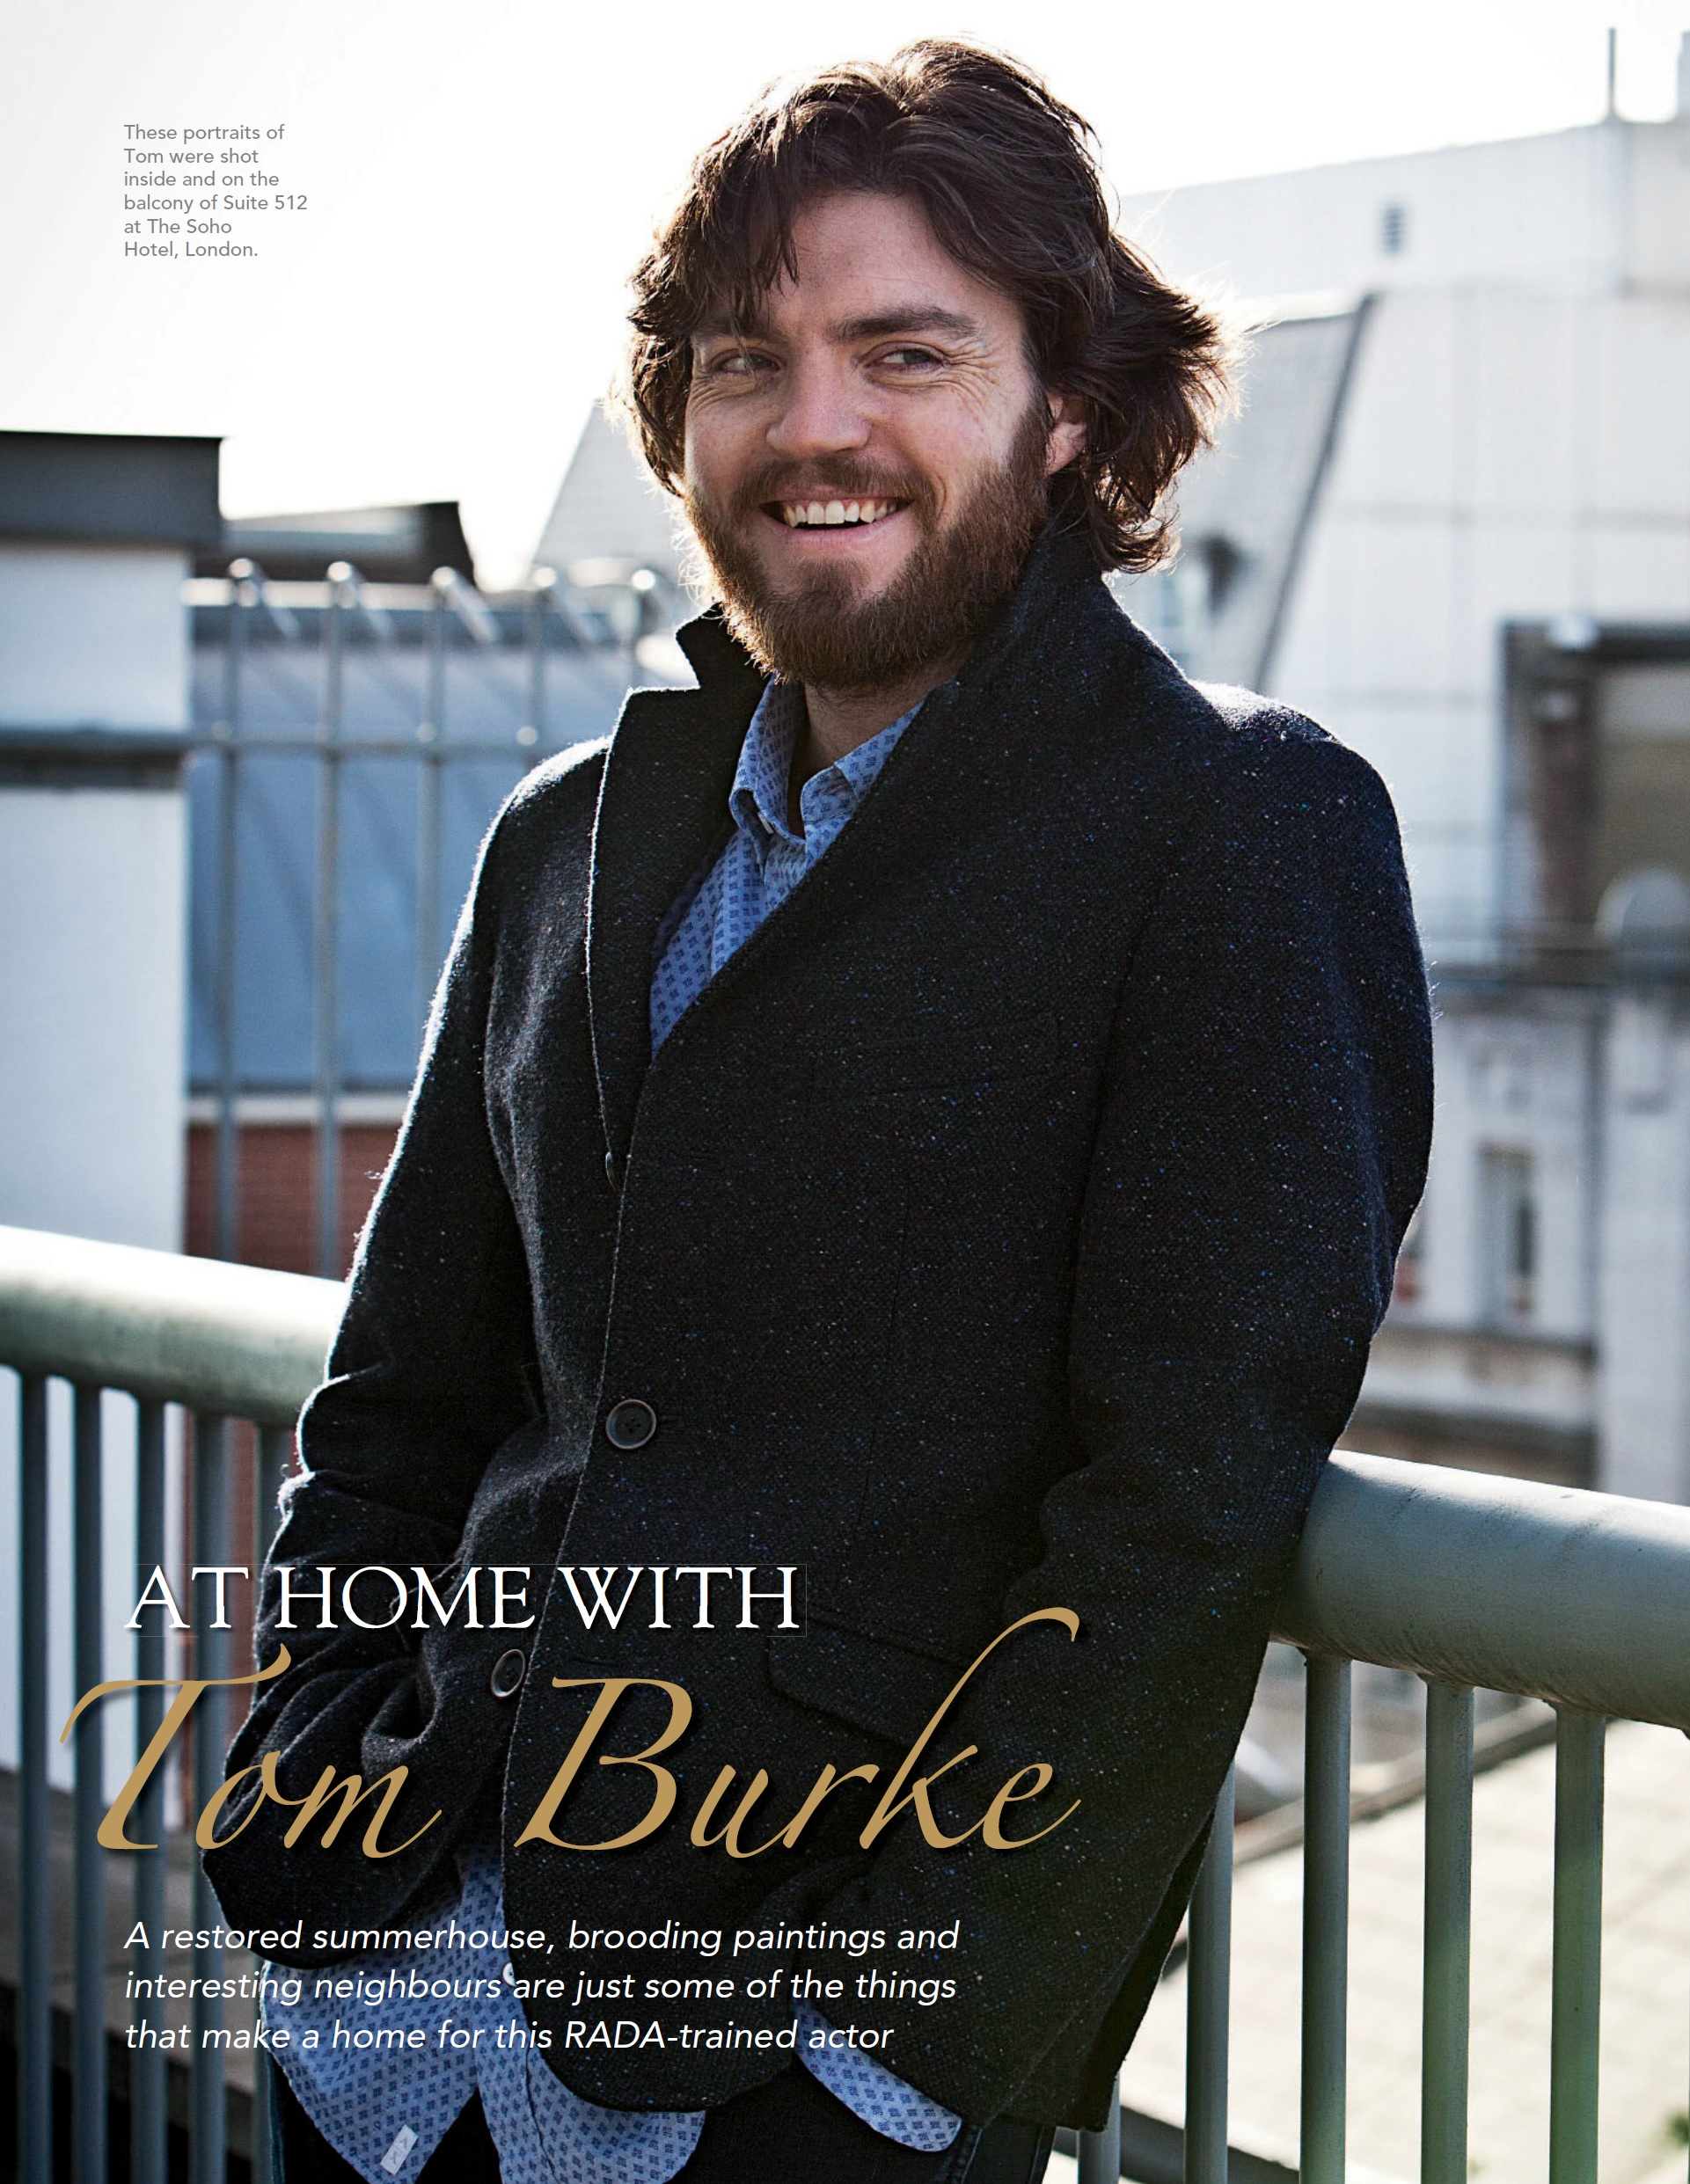 tom burke heighttom burk is going to speak about how to, tom burke instagram, tom burke (actor), tom burke partner, tom burke designer, tom burke height, tom burke hydra, tom burke theatre 2017, tom burke sexuality, tom burke actor wife, tom burke gif, tom burke tumblr, tom burke cormoran strike, tom burke married, tom burke citizens, tom burke estill, tom burke alan rickman, tom burke interview, tom burke music, tom burke theatre